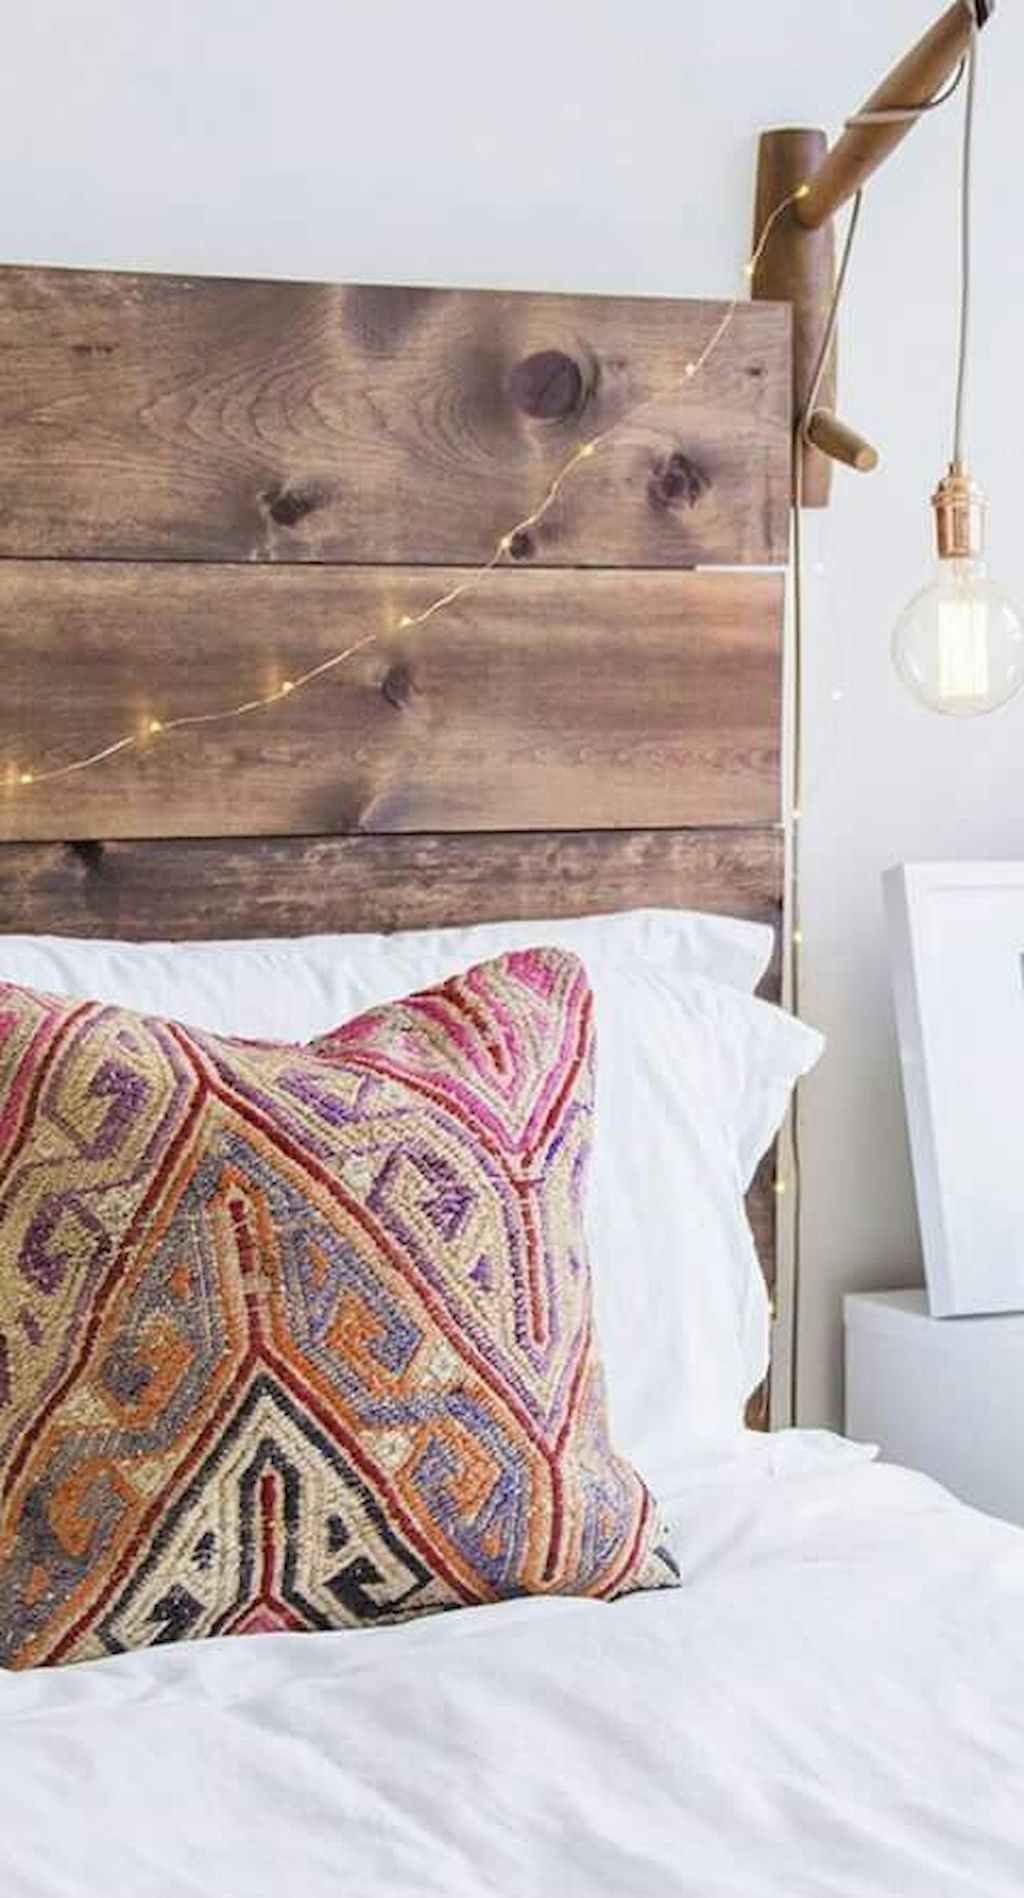 Clever college apartment decorating ideas on a budget (9)